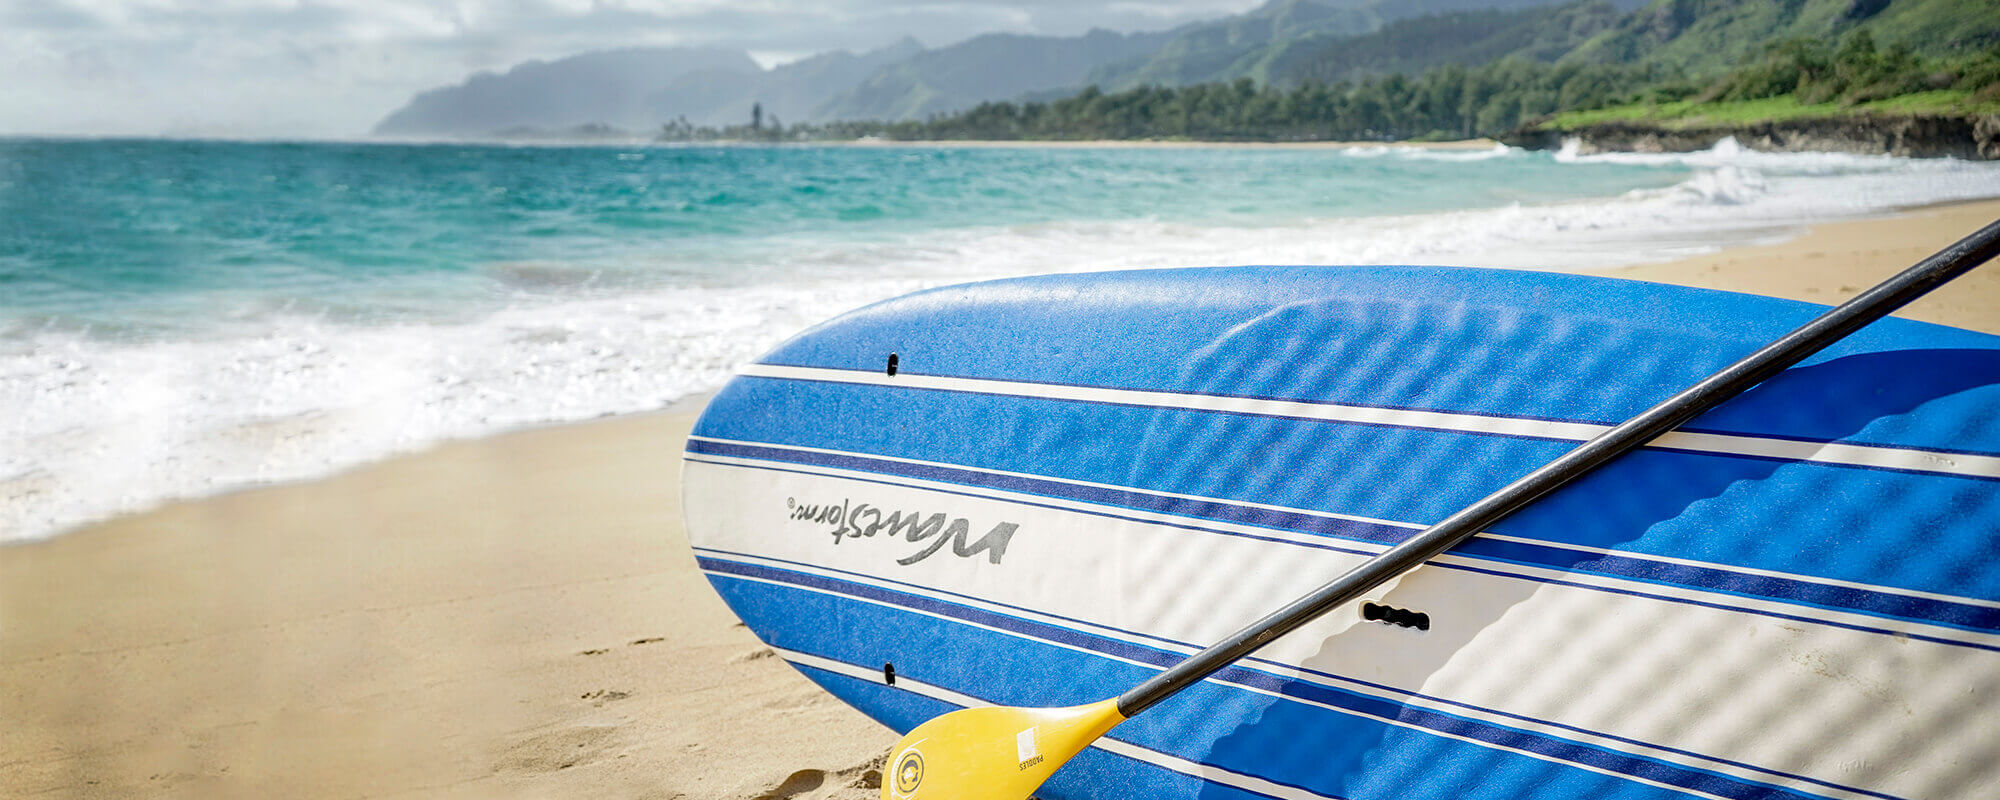 Stand Up Paddle Board rentals near laie Hawaii